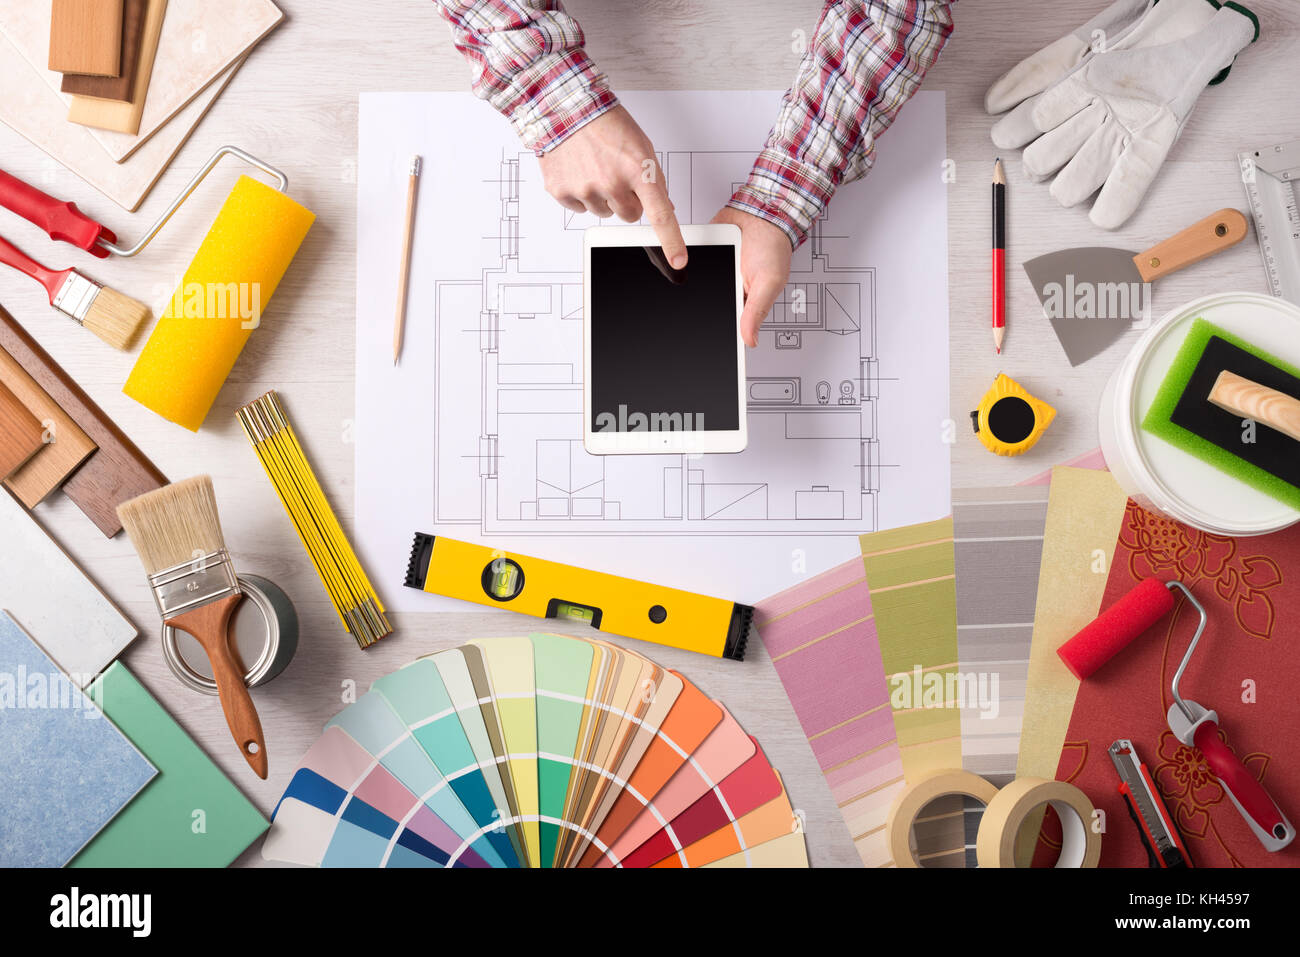 Professional Decorator Using A Digital Tablet Work Tools Painting